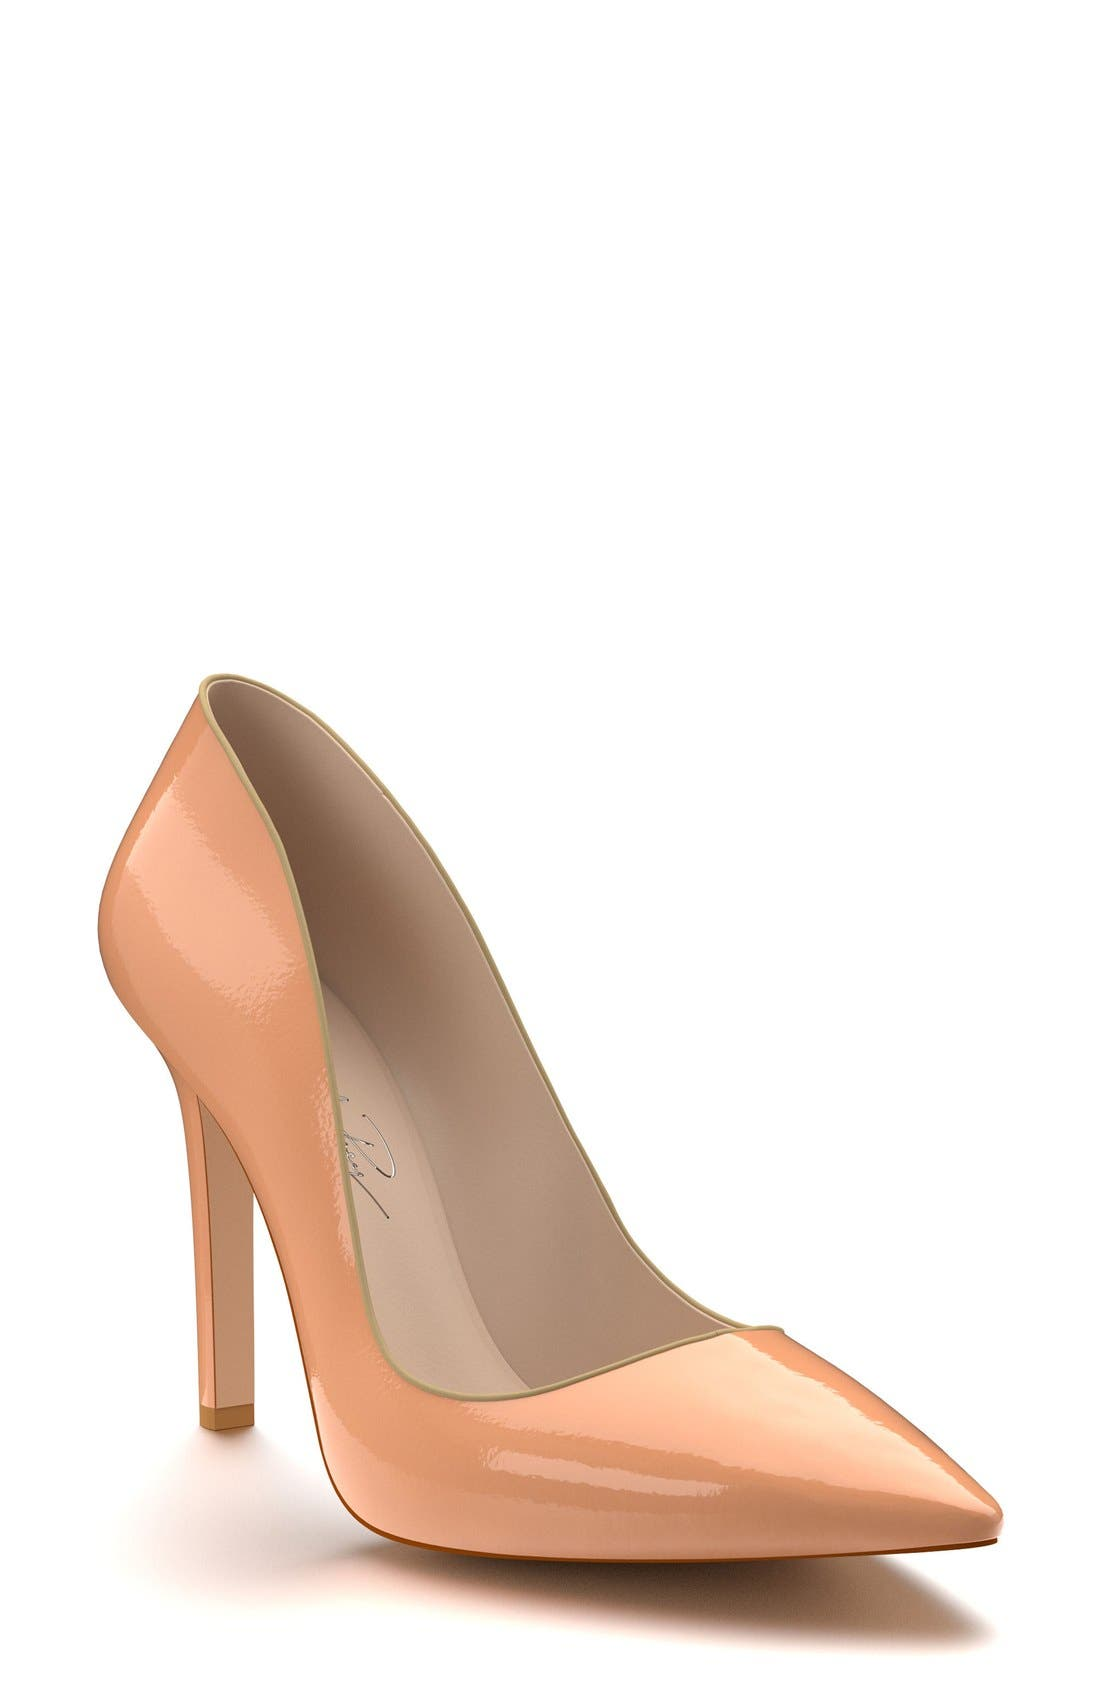 Pointy Toe Pump,                         Main,                         color, Nude Patent